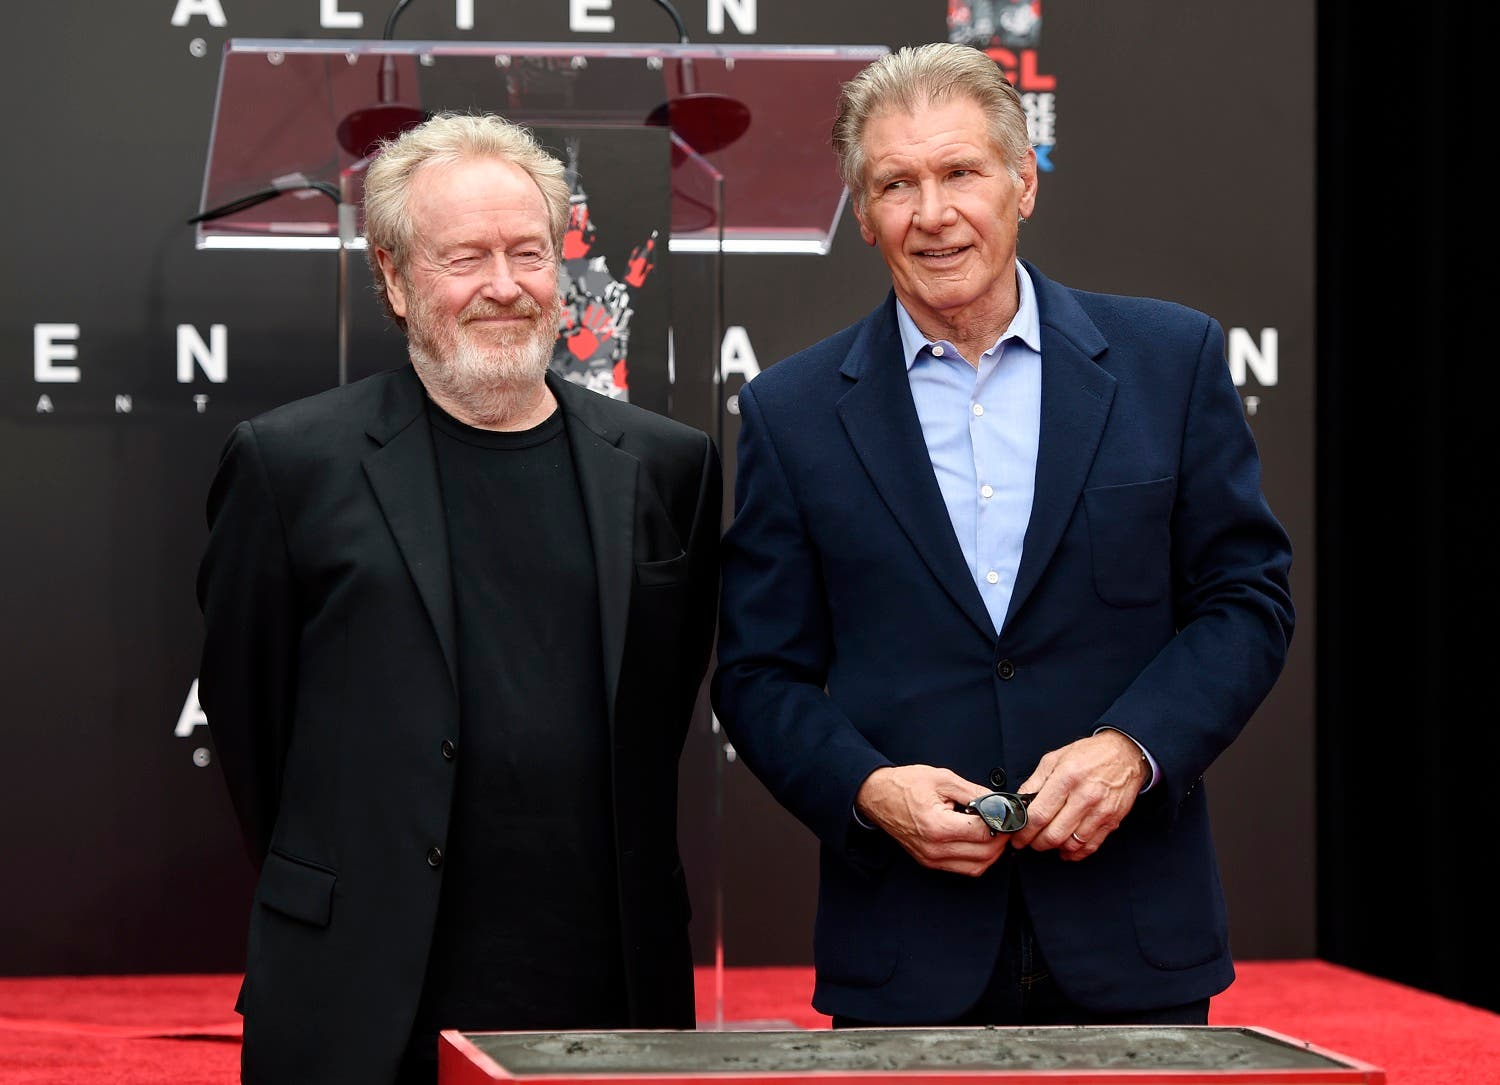 Director Sir Ridley Scott (left) and actor Harrison Ford pose together at the TCL Chinese Theatre on May 17, 2017 in Los Angeles. Scott directed Ford in the classic 1982 science fiction film 'Blade Runner.'(AP)